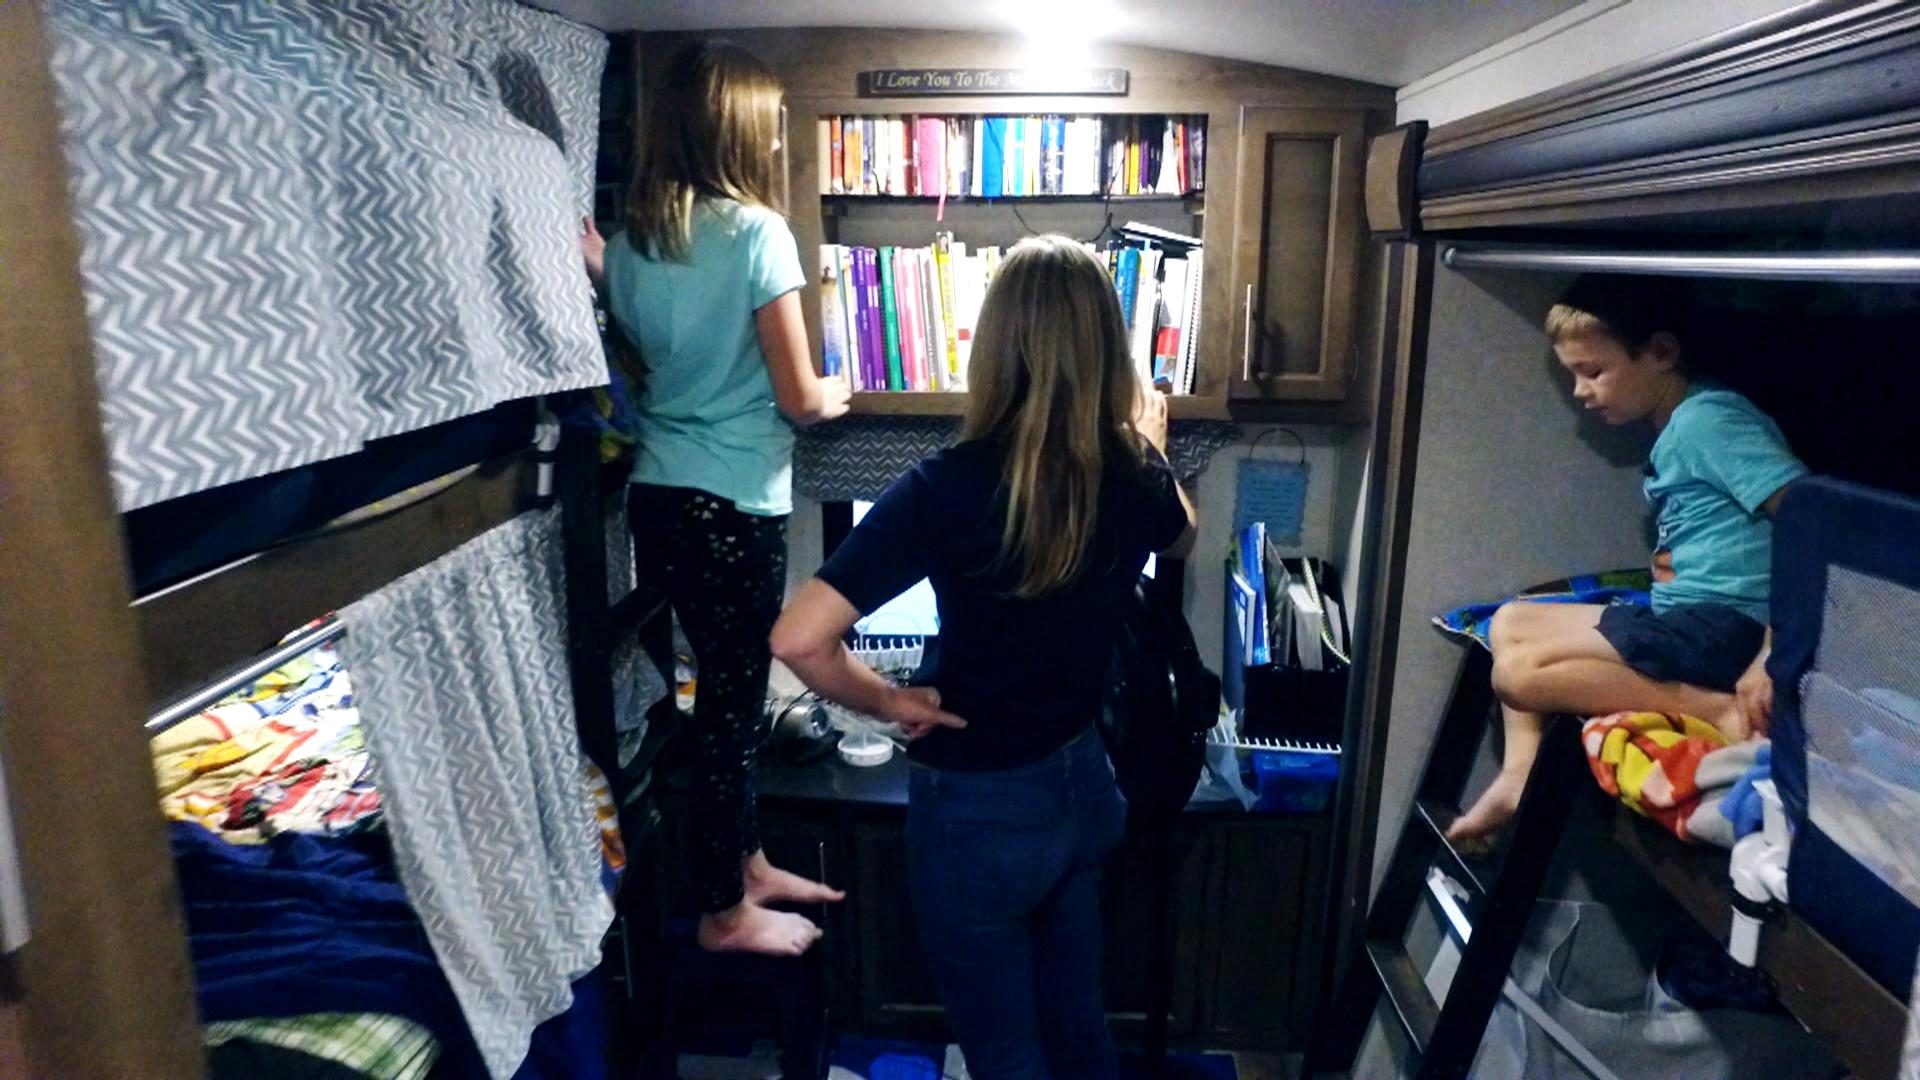 Meet the family 'road schooling': Living and learning in an RV